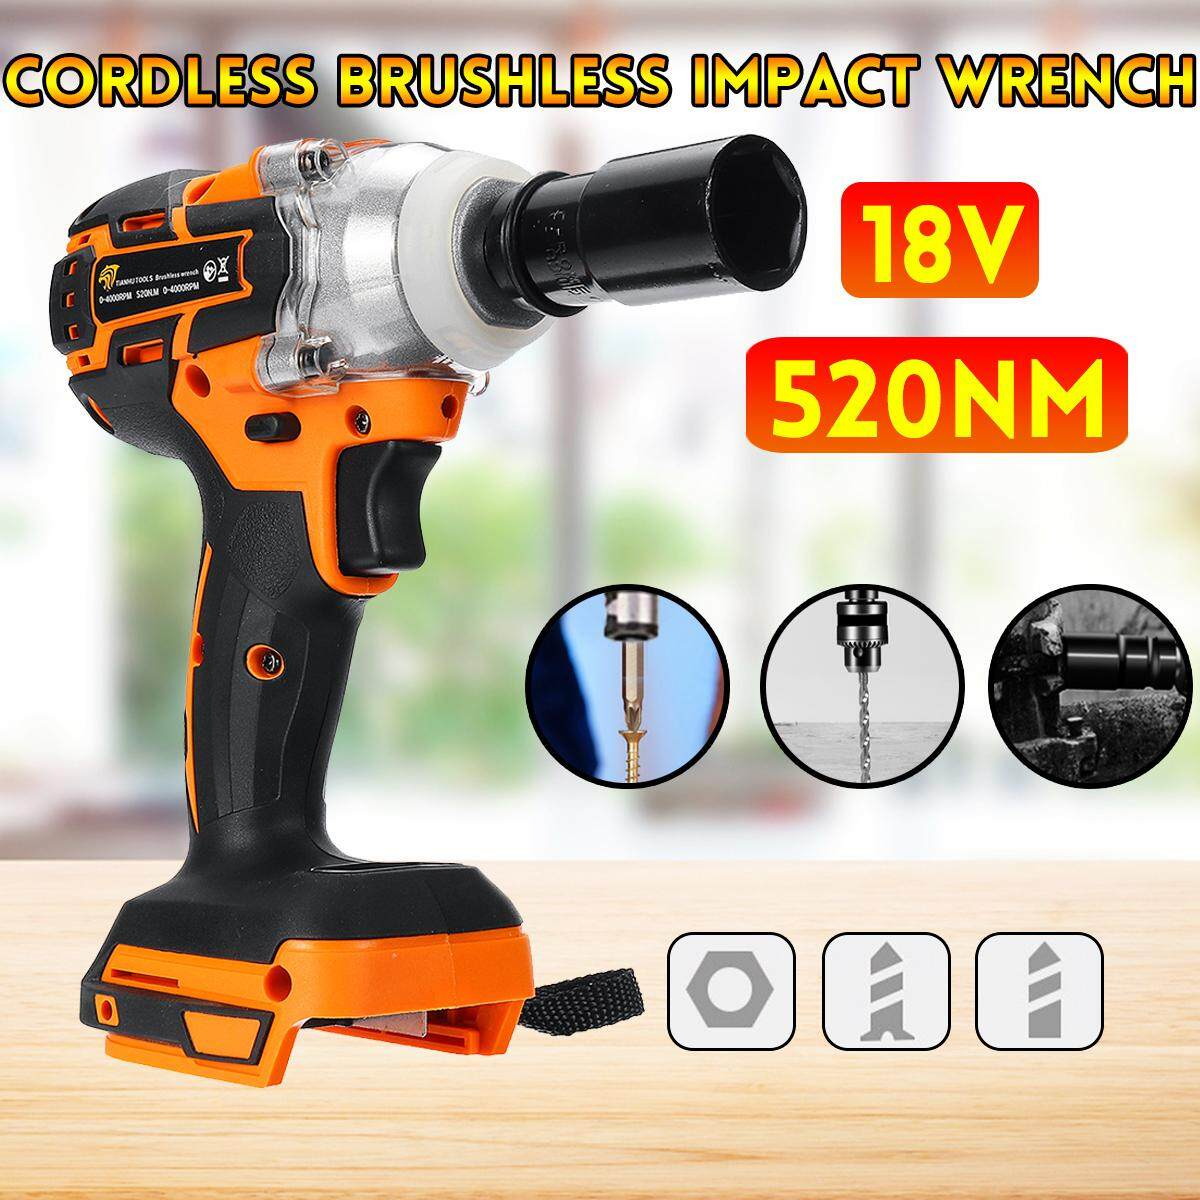 18V 520Nm 1/2  High Torque Cordless Brushless Impact Wrench Drill Tool Electric